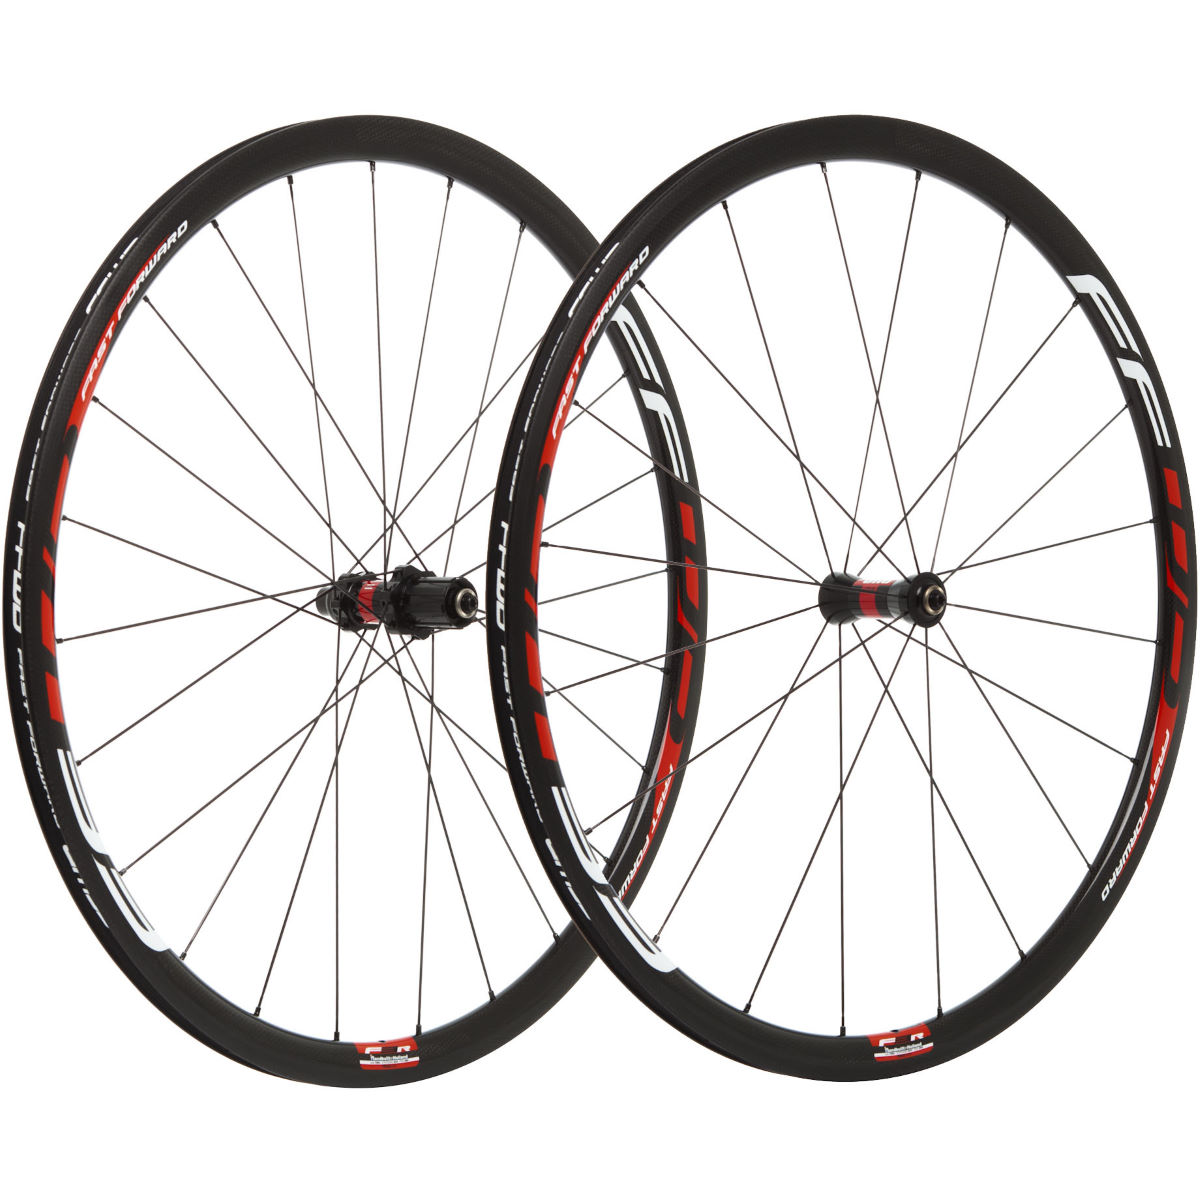 Image of Paire de roues Fast Forward F3R FCC SP (carbone, 30 mm) - 700c Shimano